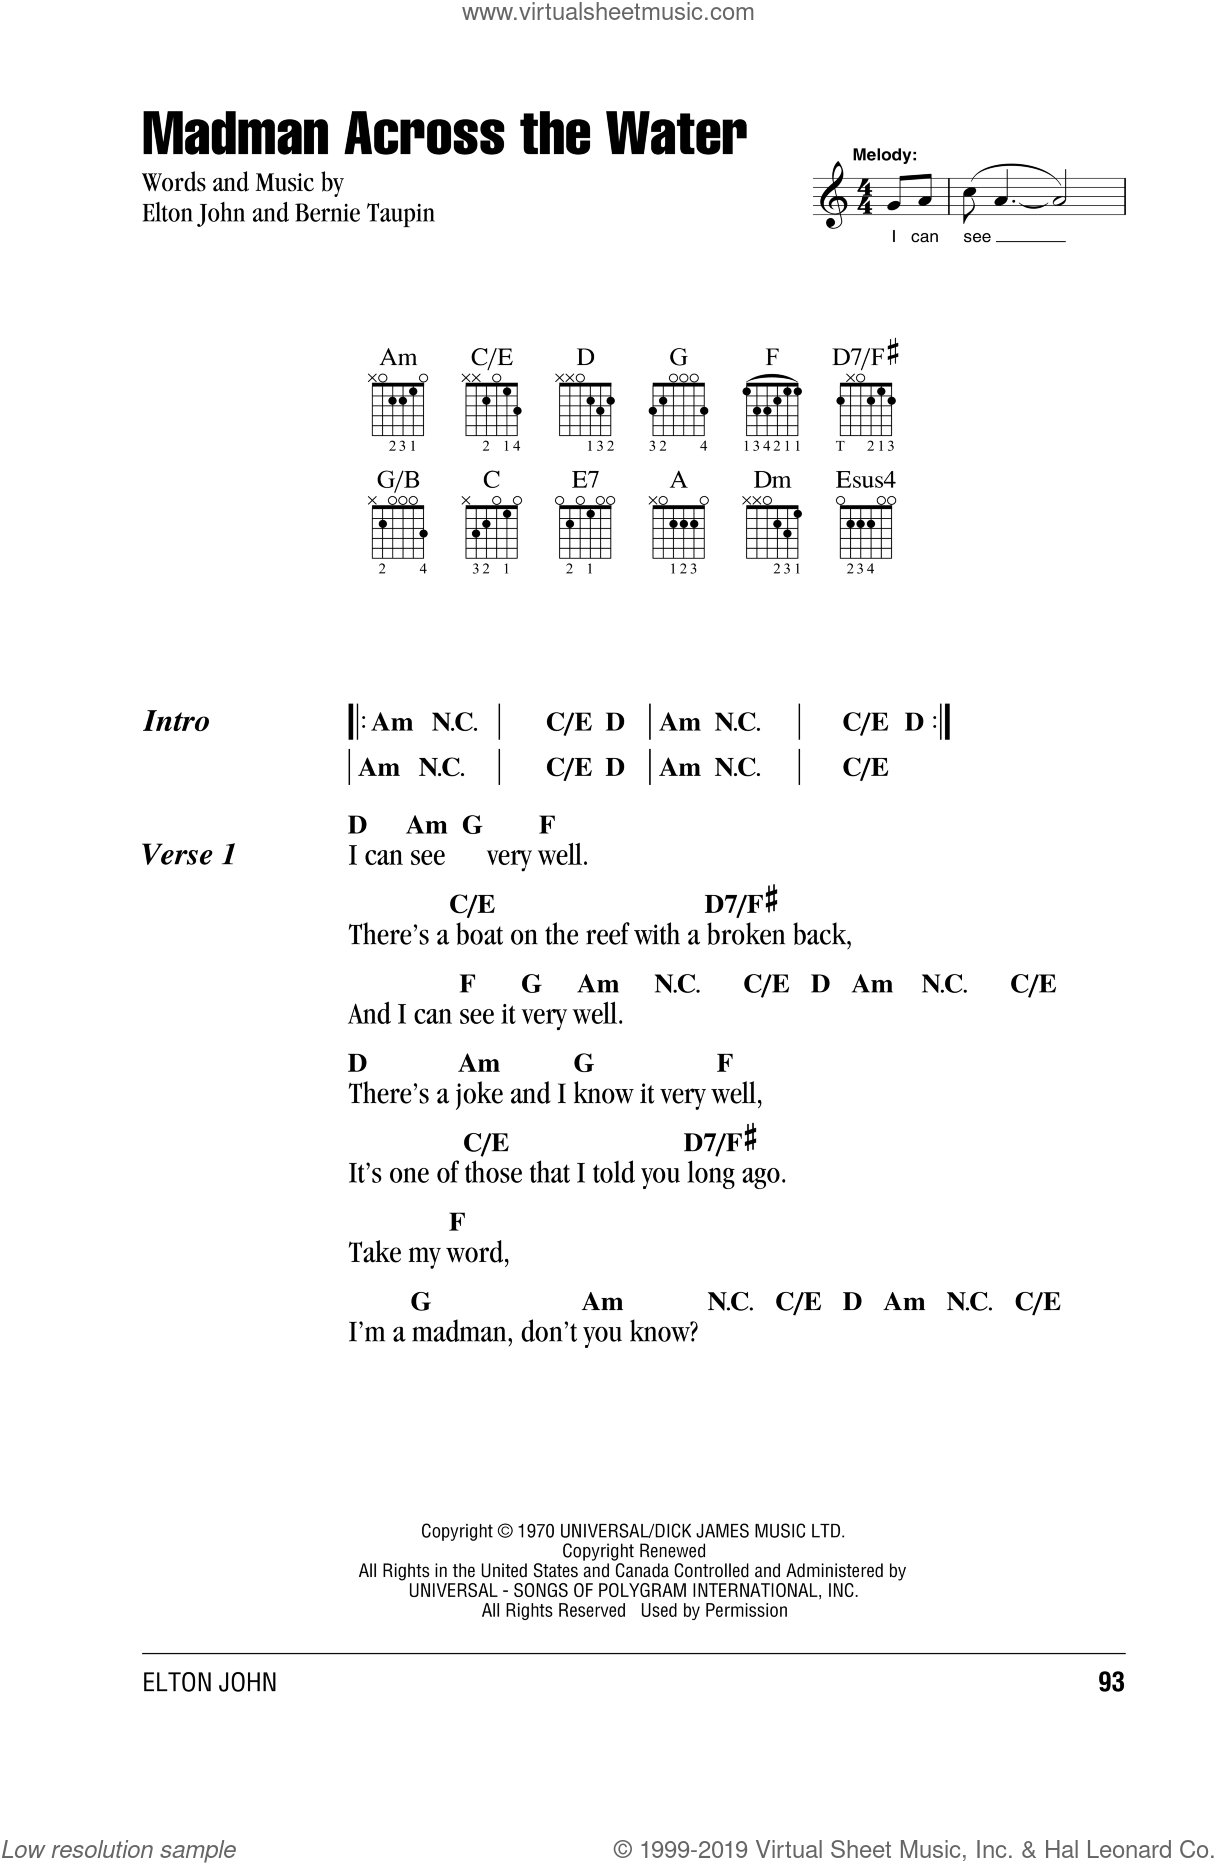 Madman Across The Water sheet music for guitar (chords) by Elton John and Bernie Taupin, intermediate